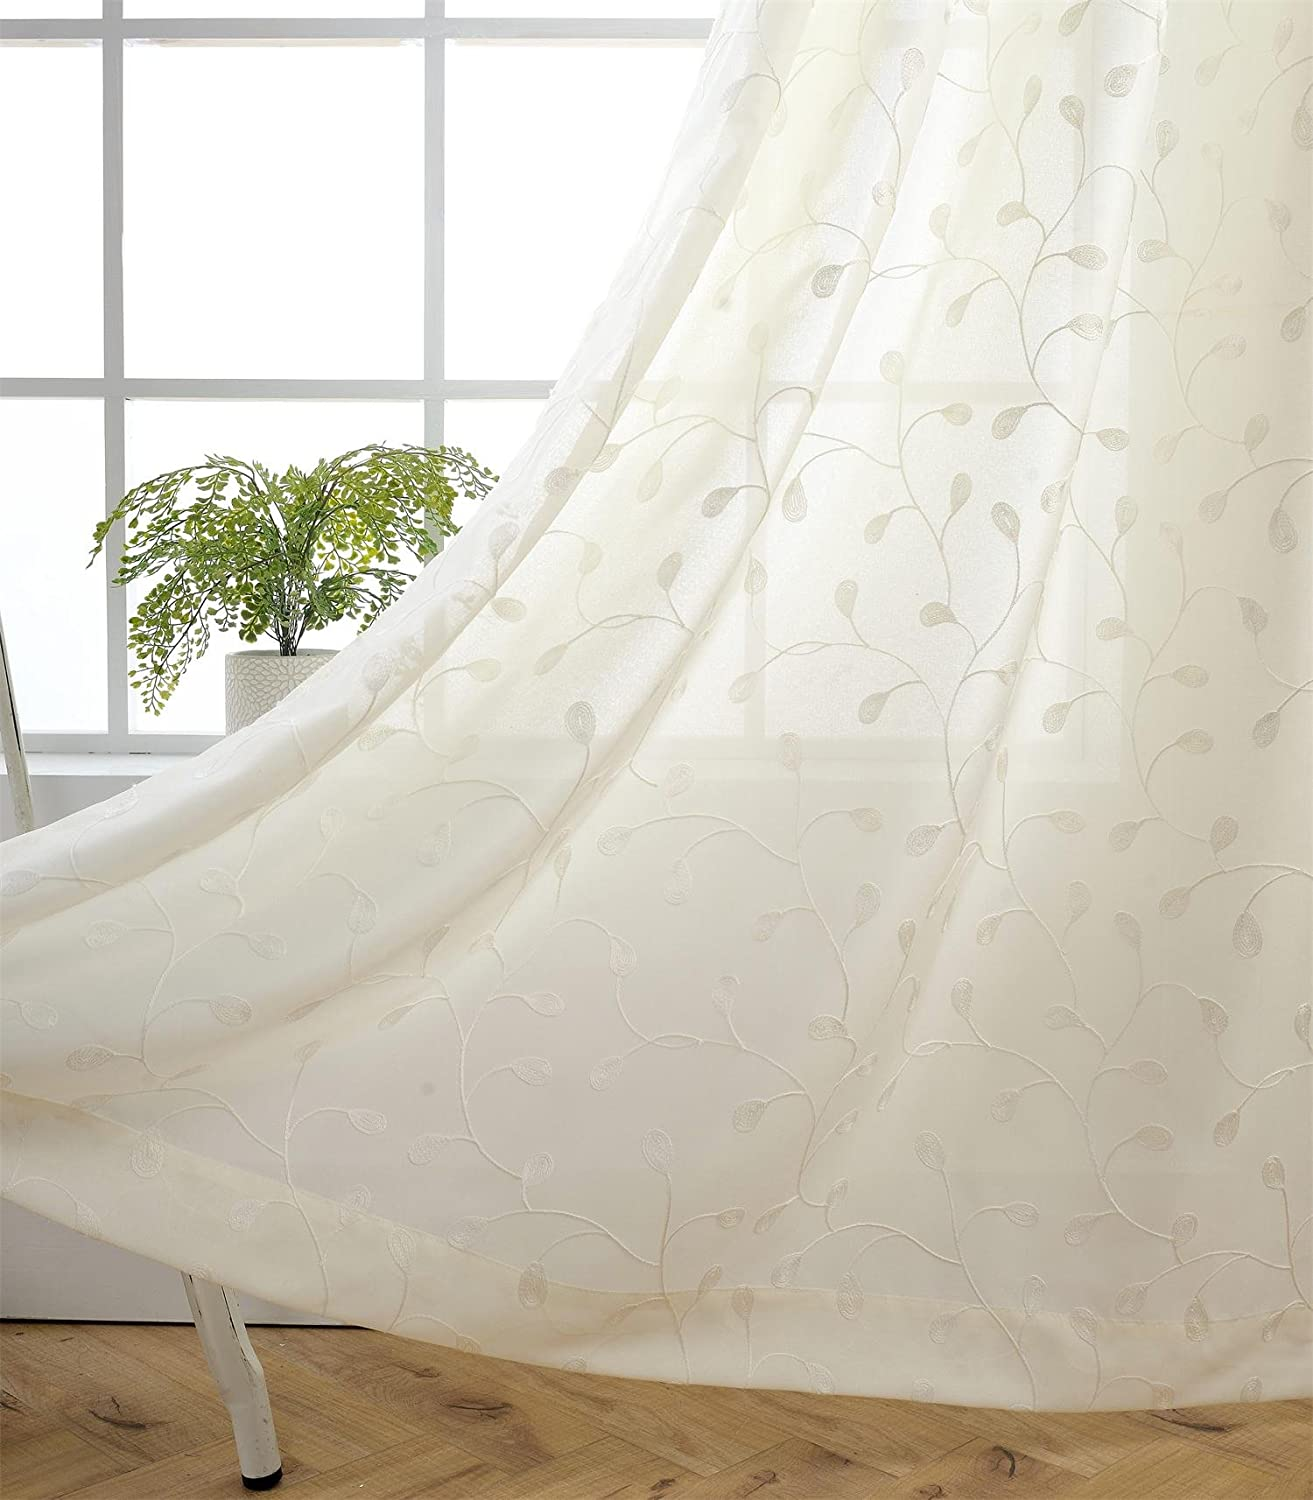 Miuco Floral Embroidery Semi Sheer Curtains Faux Linen Grommet Curtains for Bedroom 52 x 63 Inch 2 Panels, Off White